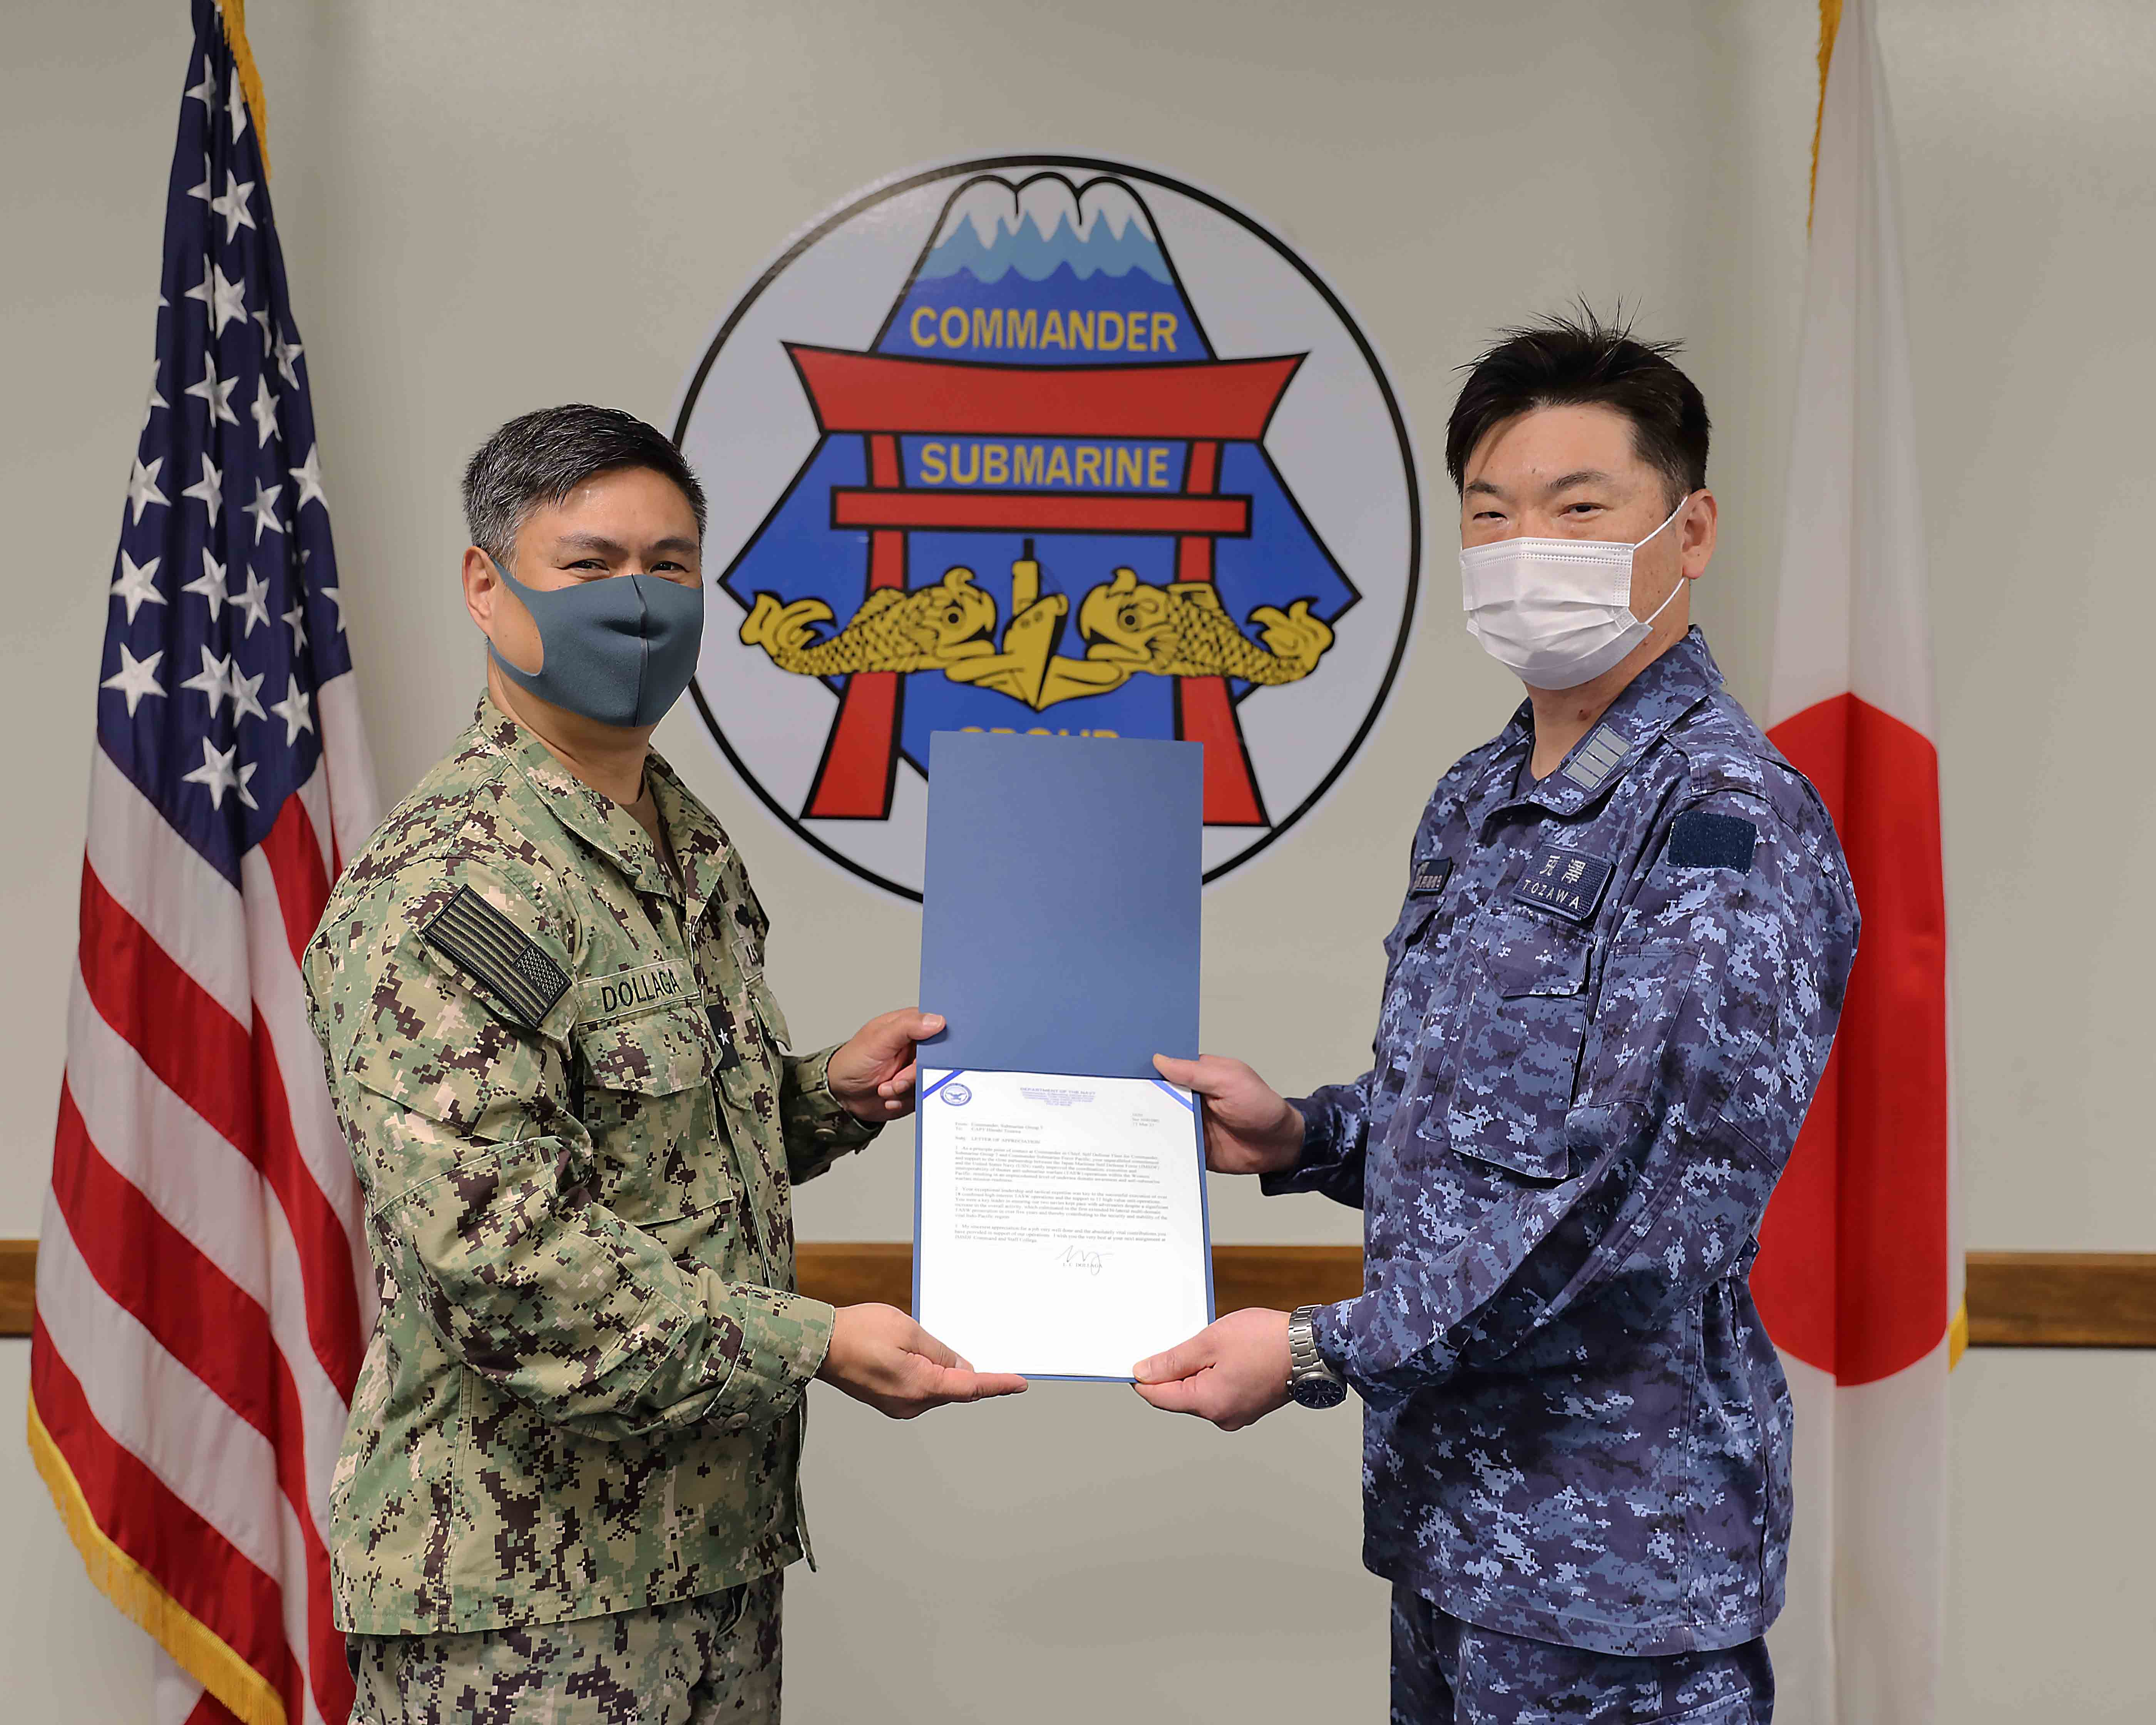 210315-N-DS193-0004 YOKOSUKA, Japan (March 15, 2021) - Rear Adm. Butch Dollaga, Commander, Submarine Group 7, presents Lt. Cmdr. Satoshi Koisumi with a letter of appreciation for his unparalleled commitment and support to the close partnership between the Japan Maritime Self-Defense Force and U.S. Navy.